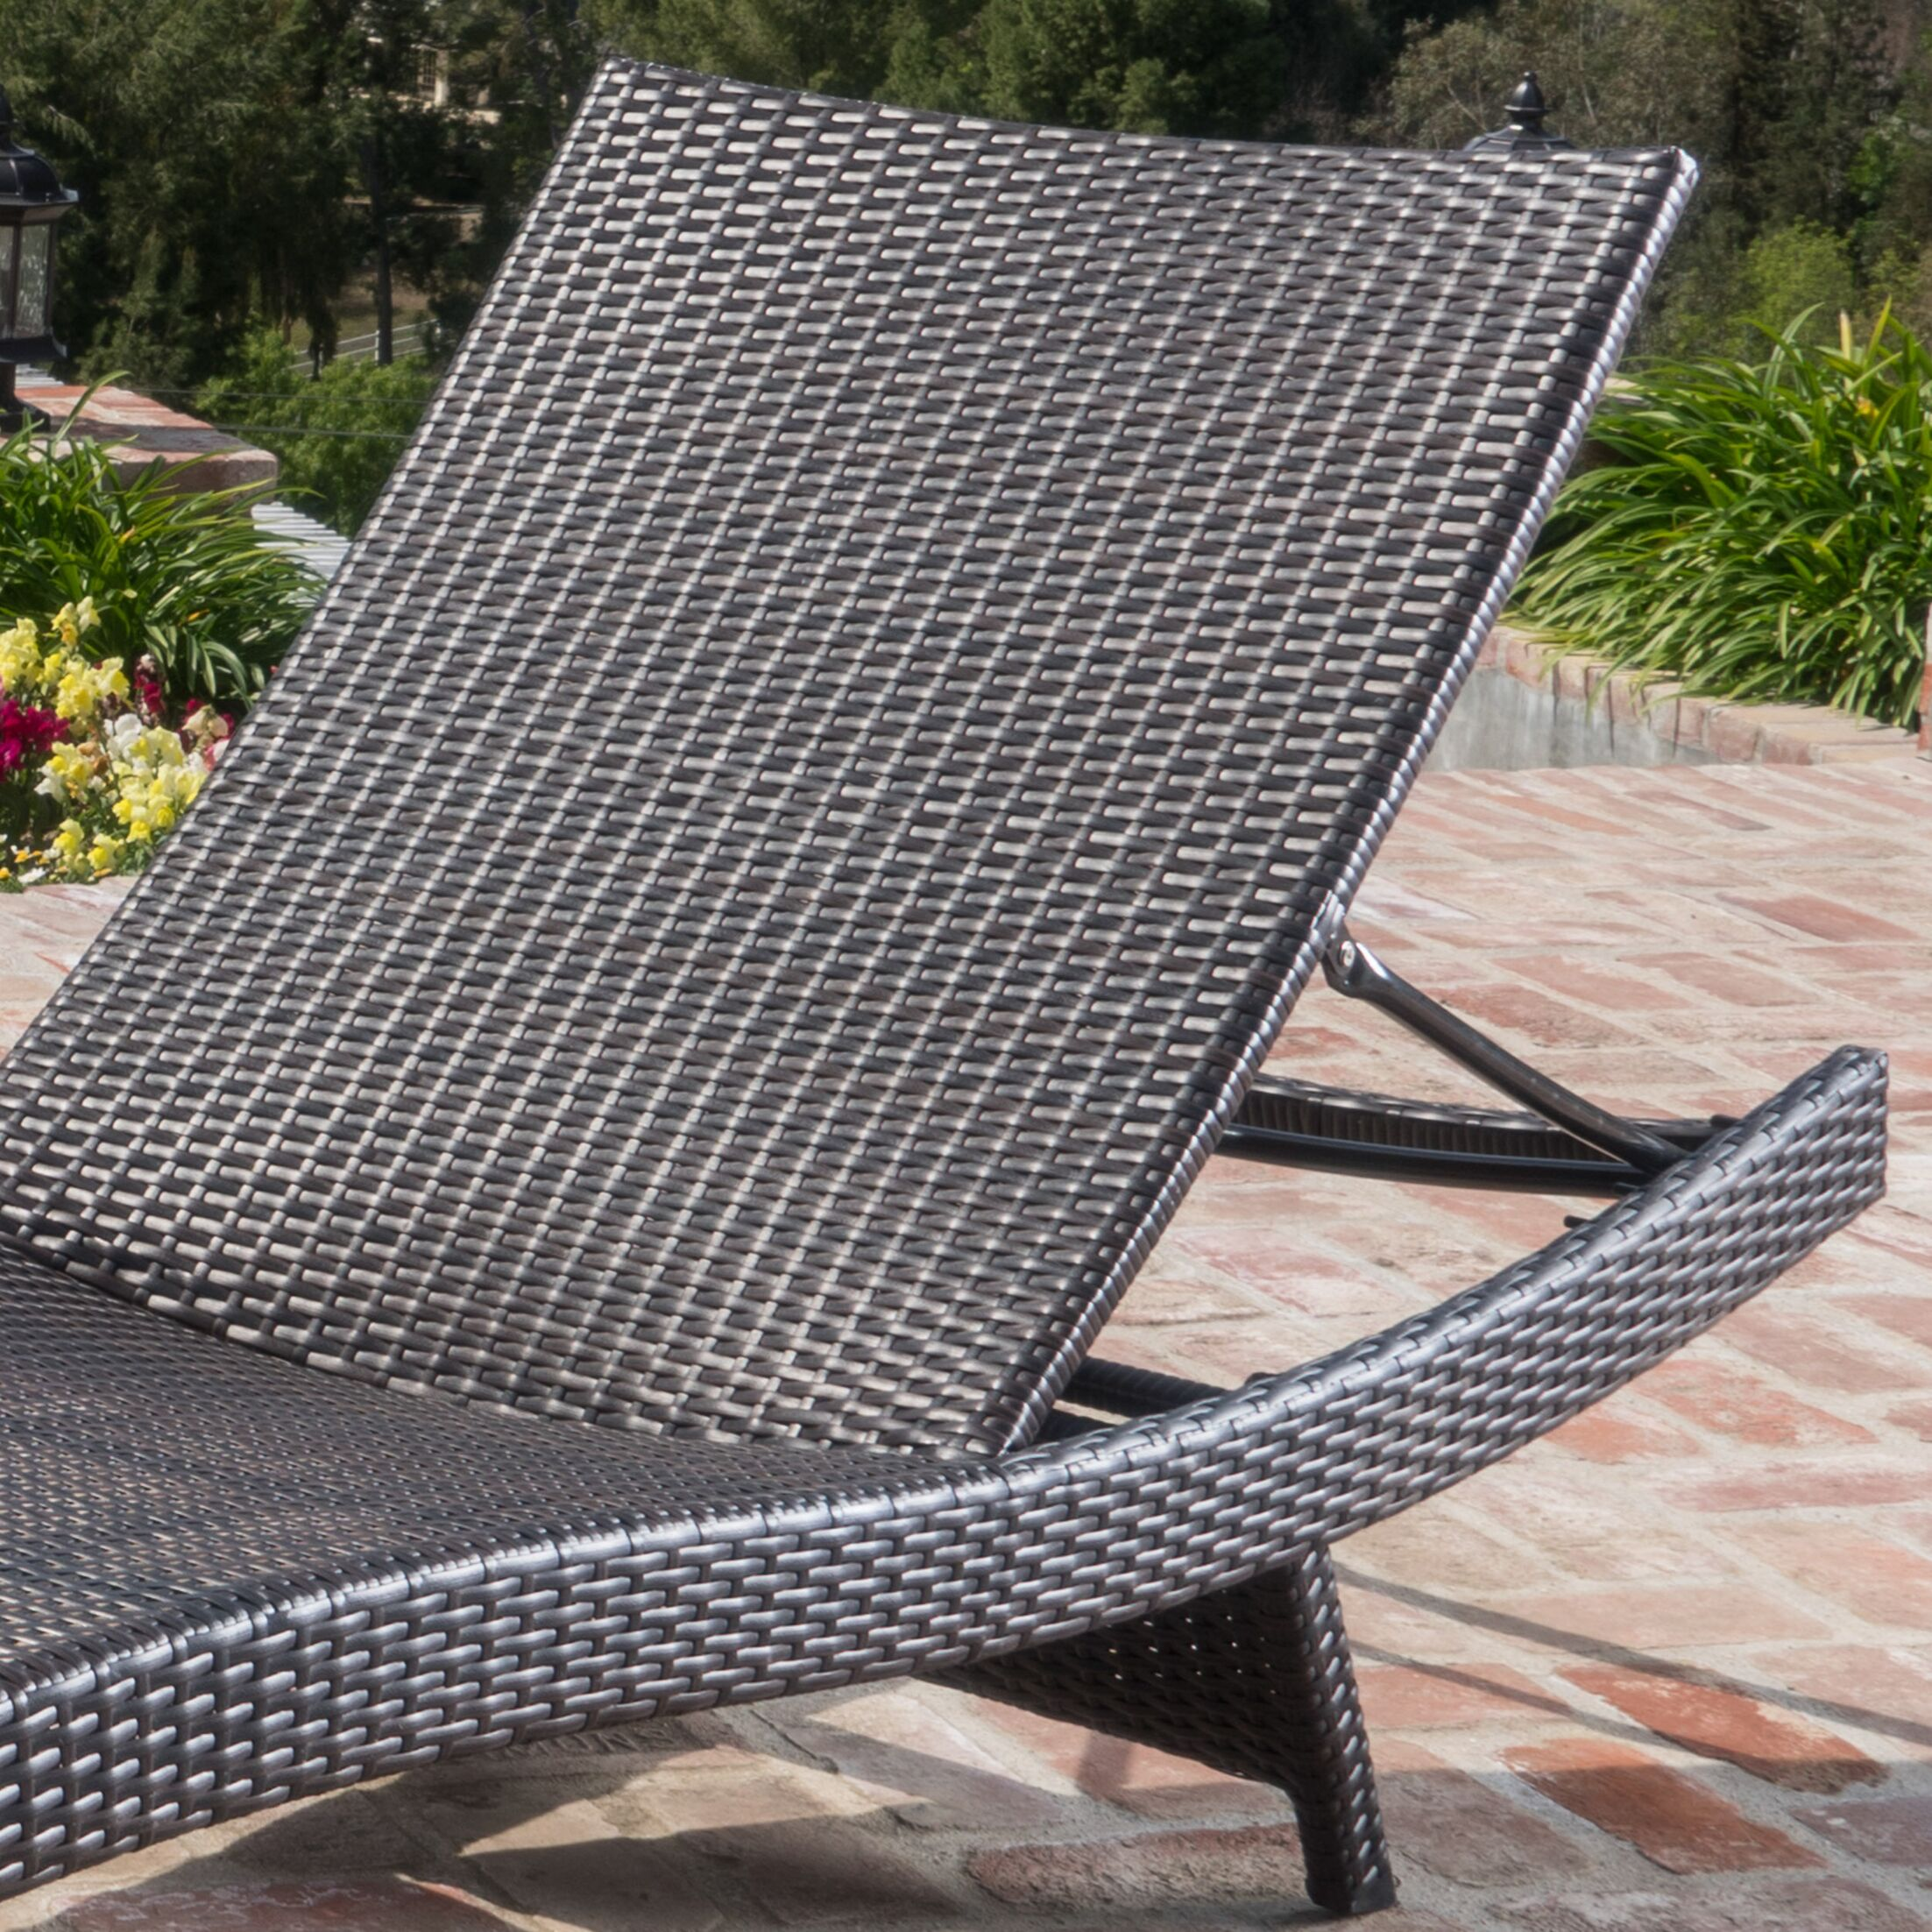 Ullman Adjustable Chaise Lounge with Beige Cushions